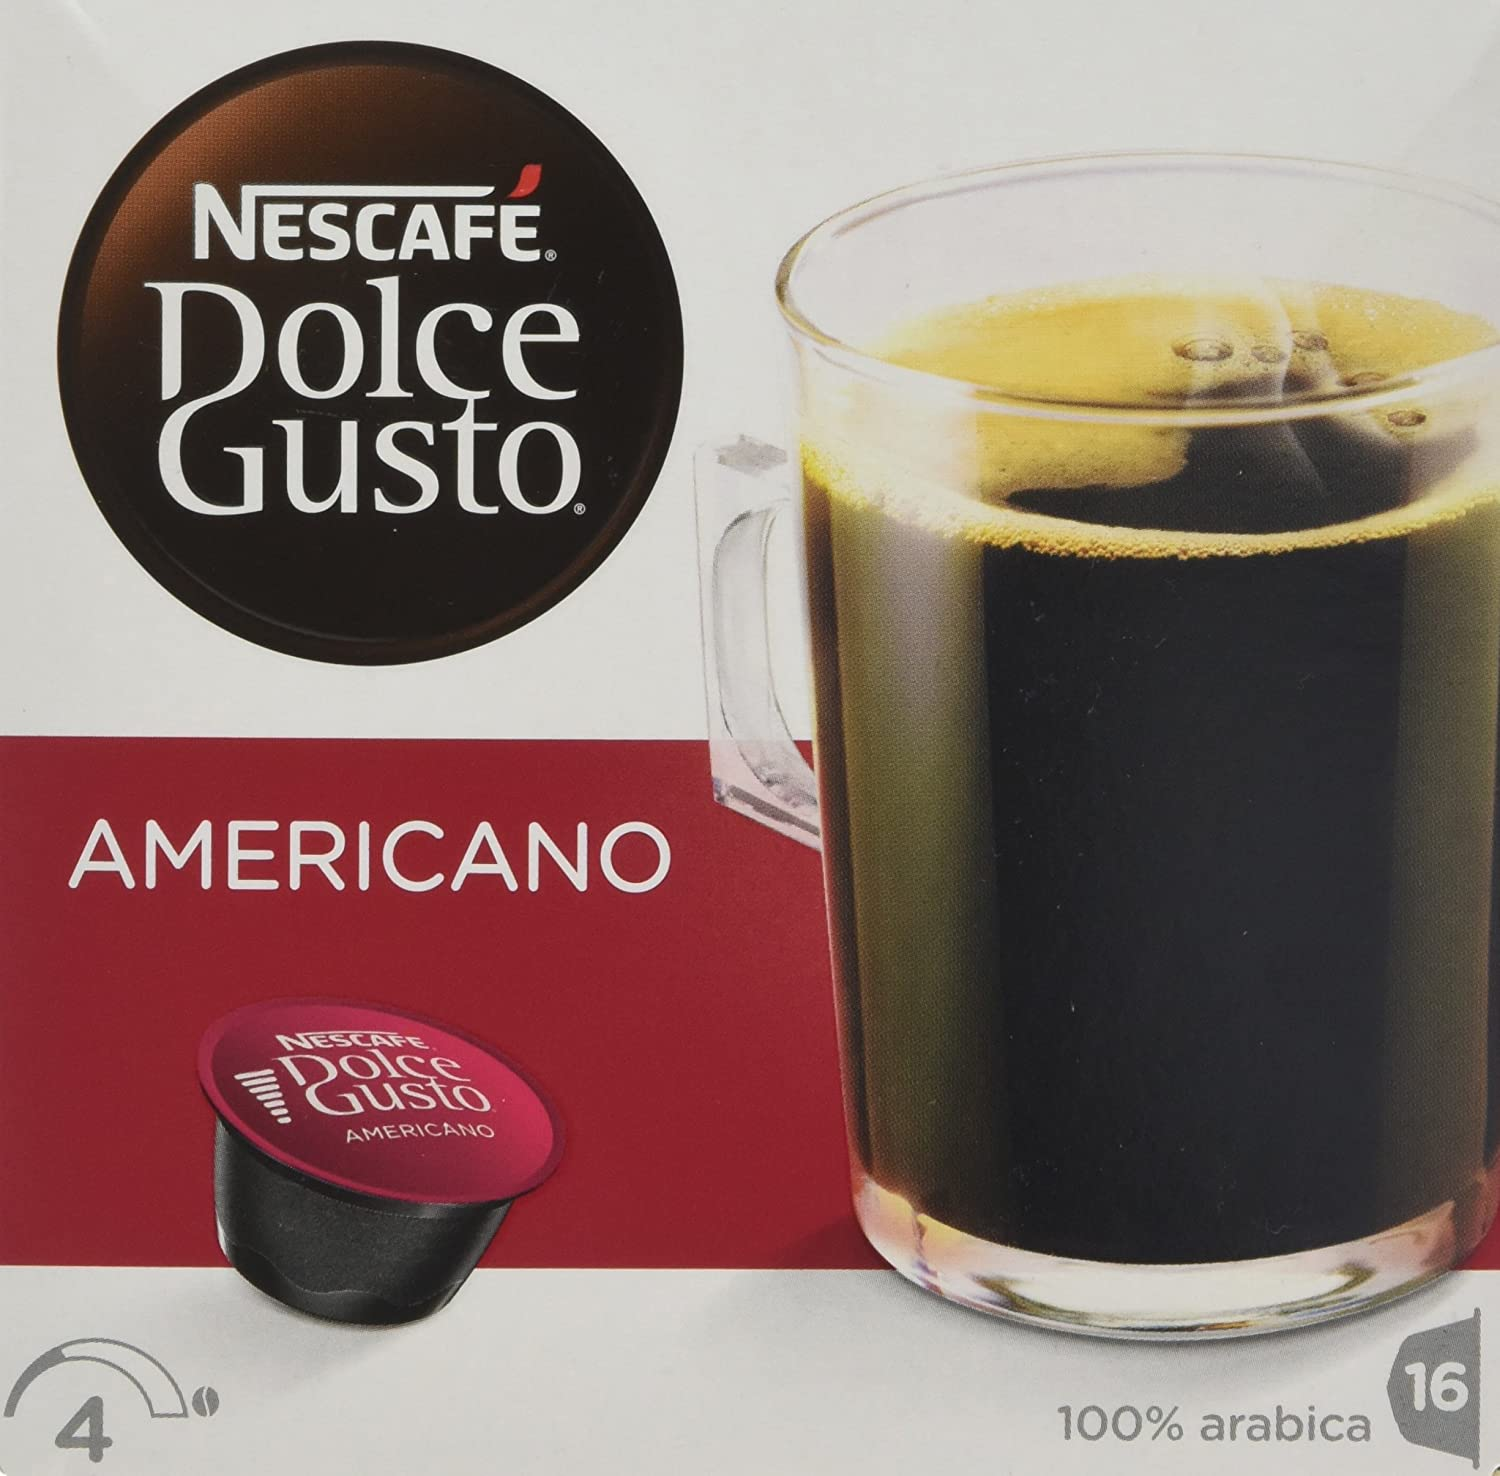 Nescafe Dolce Gusto Americano Coffee Pods 16 Drinks 160g Case